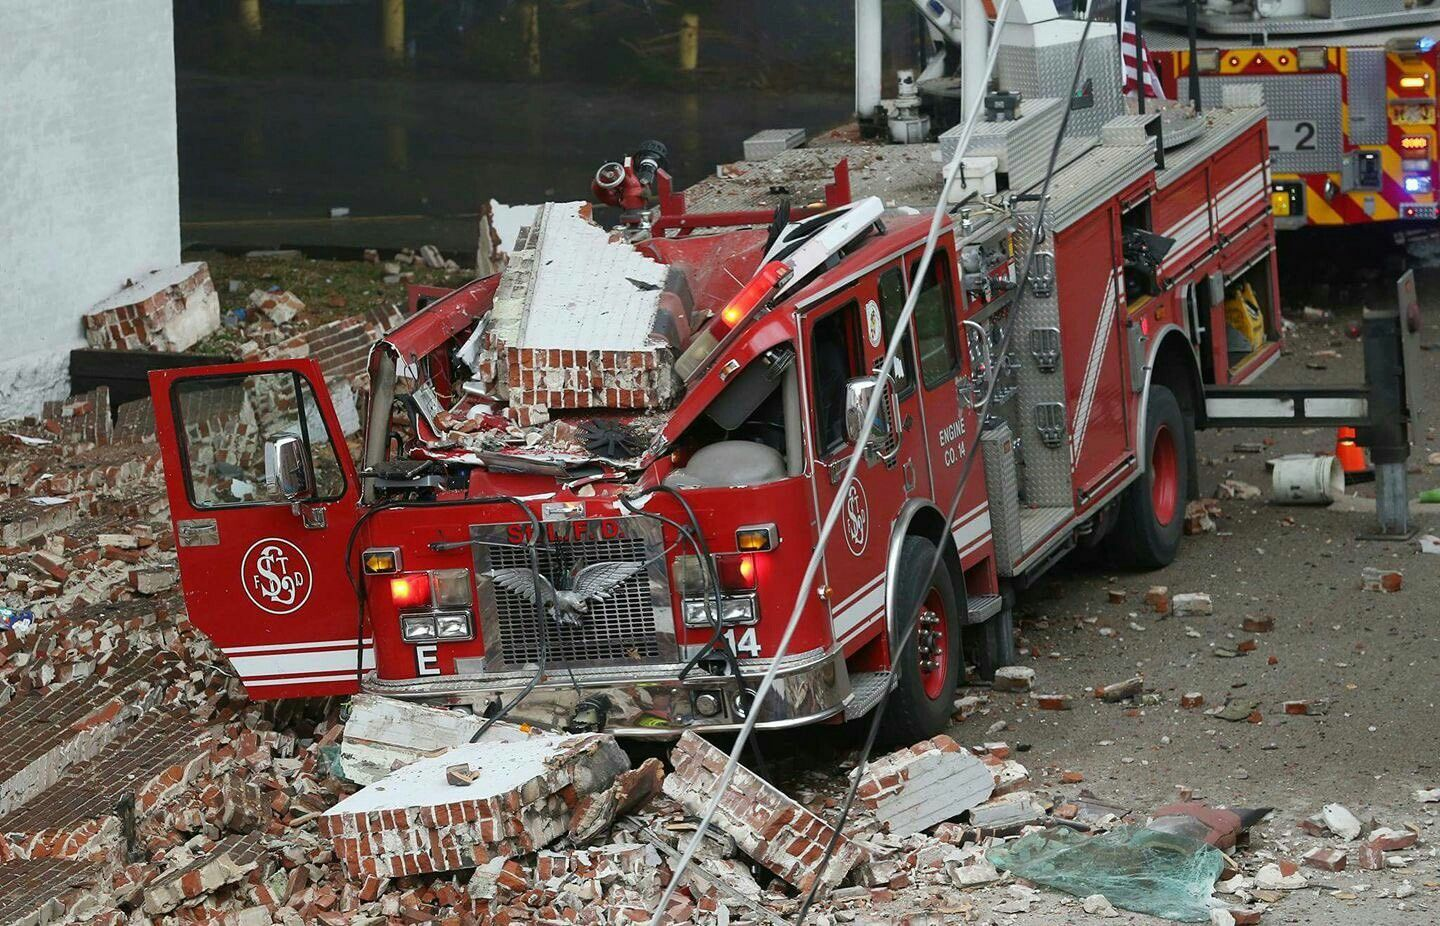 Ouch Cause Of A Building Collapse Fire Trucks Rescue Vehicles